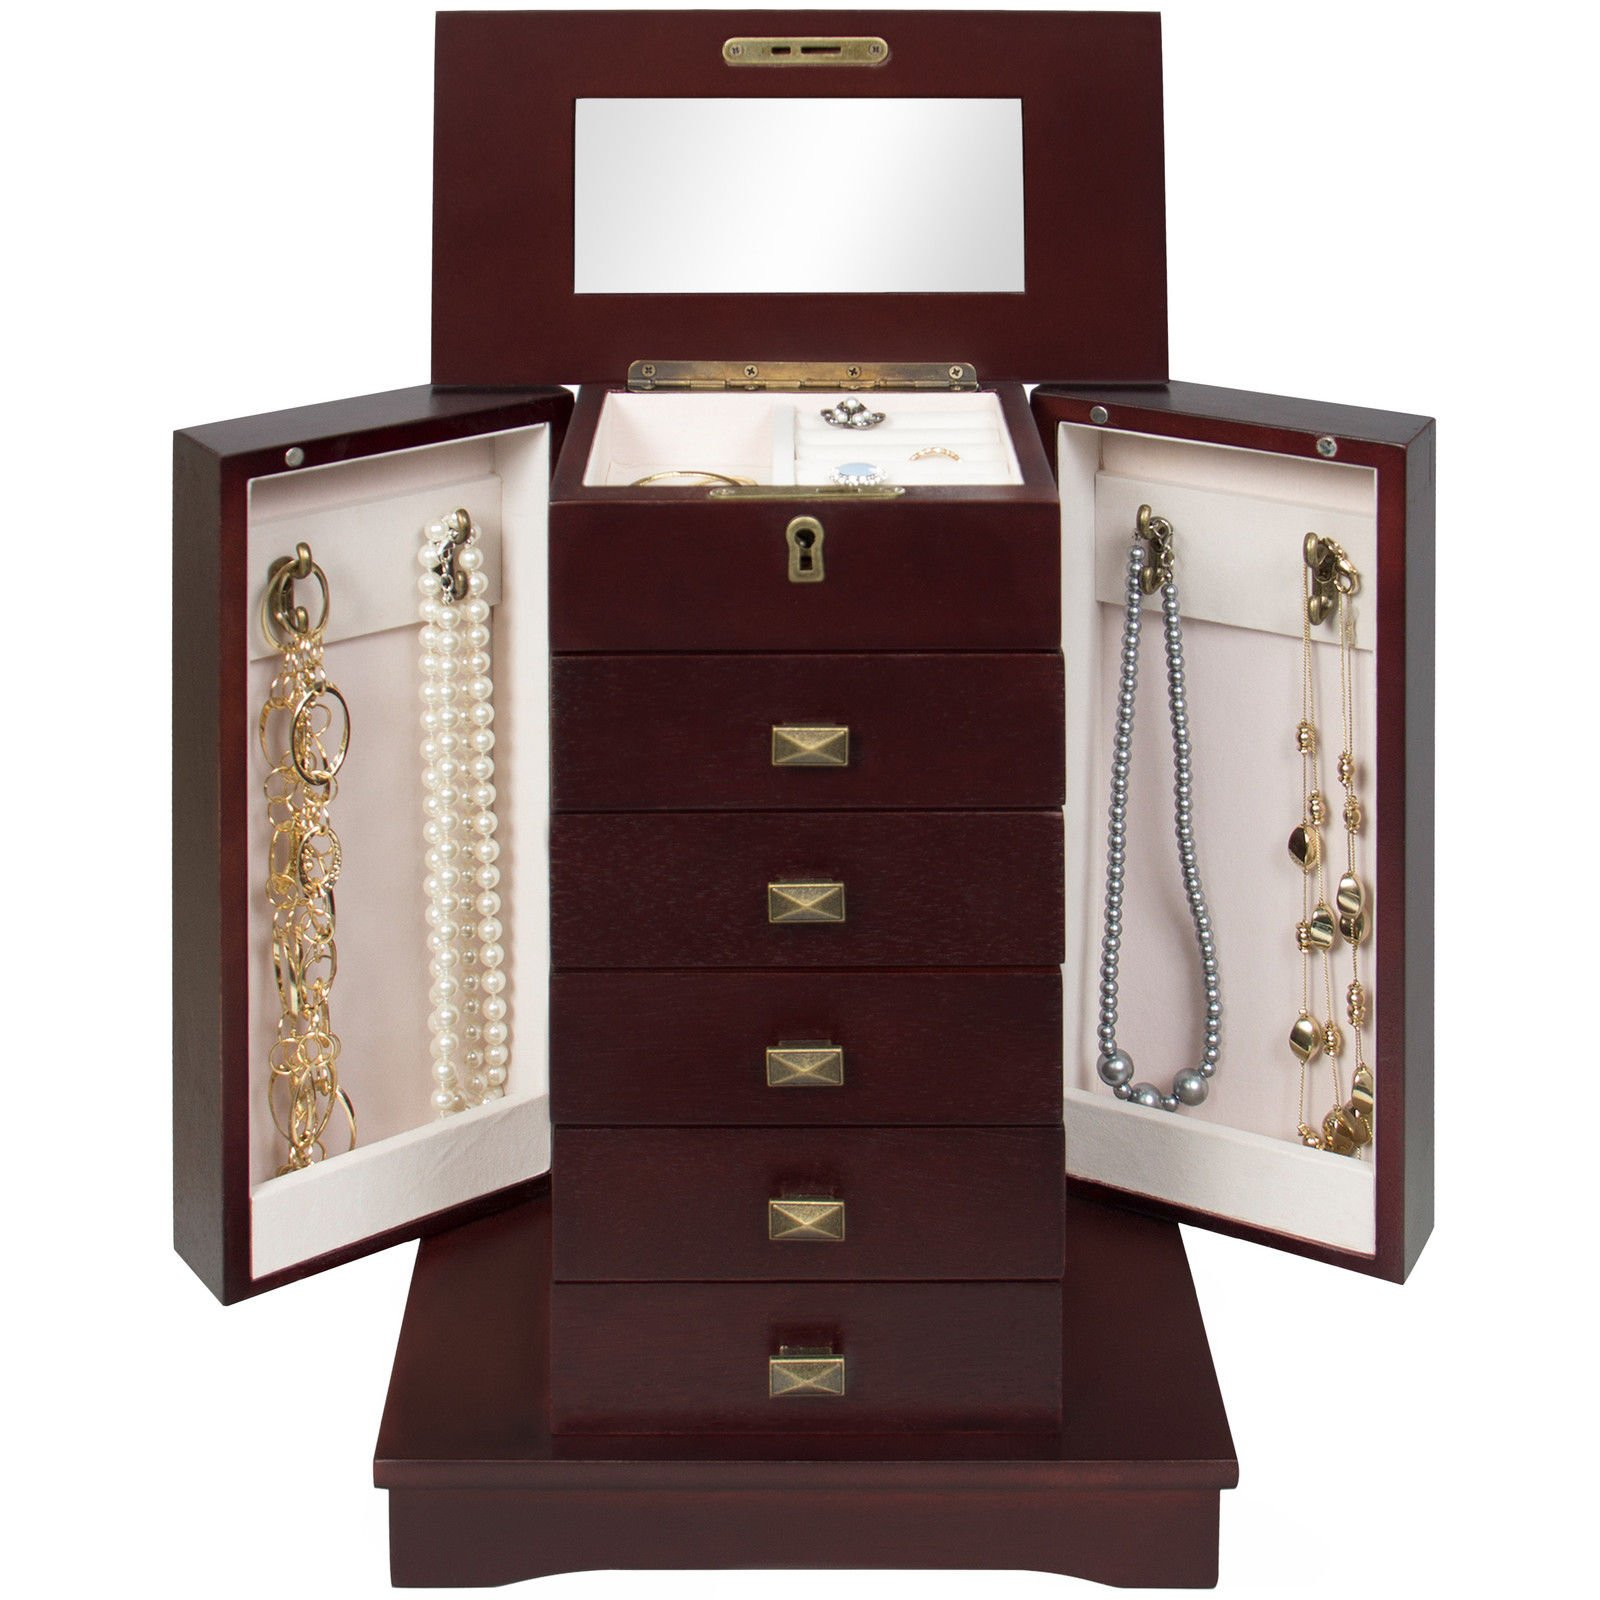 Elegant Piece Handcrafted Wooden Armoire Jewelry Cabinet Functional Great for Storing Everyday Jewelry